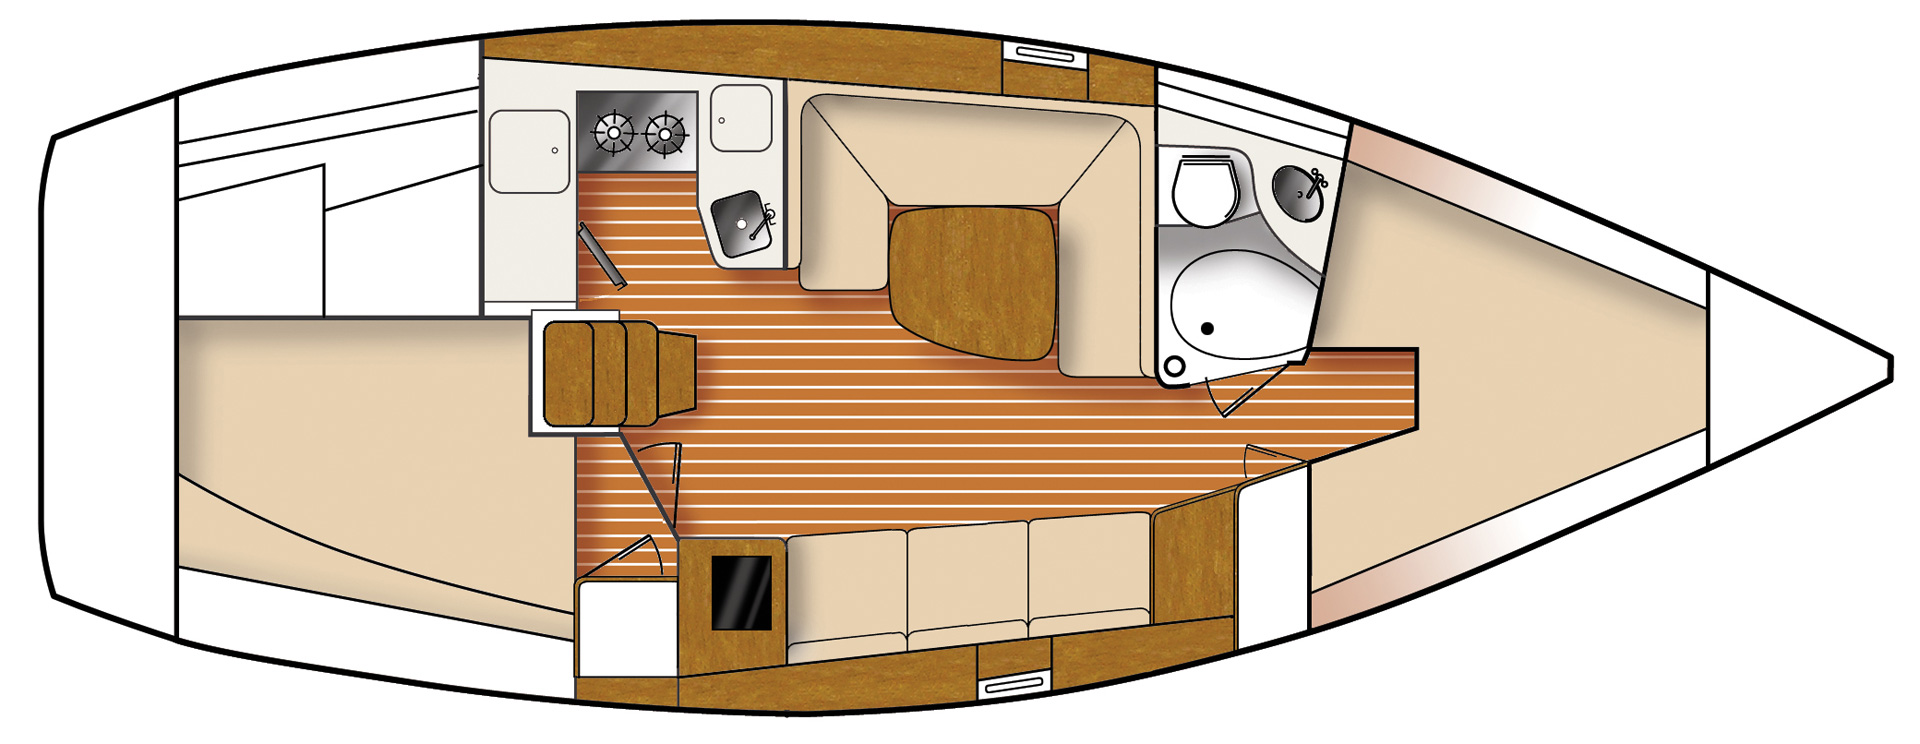 Catalina 315 floorplan